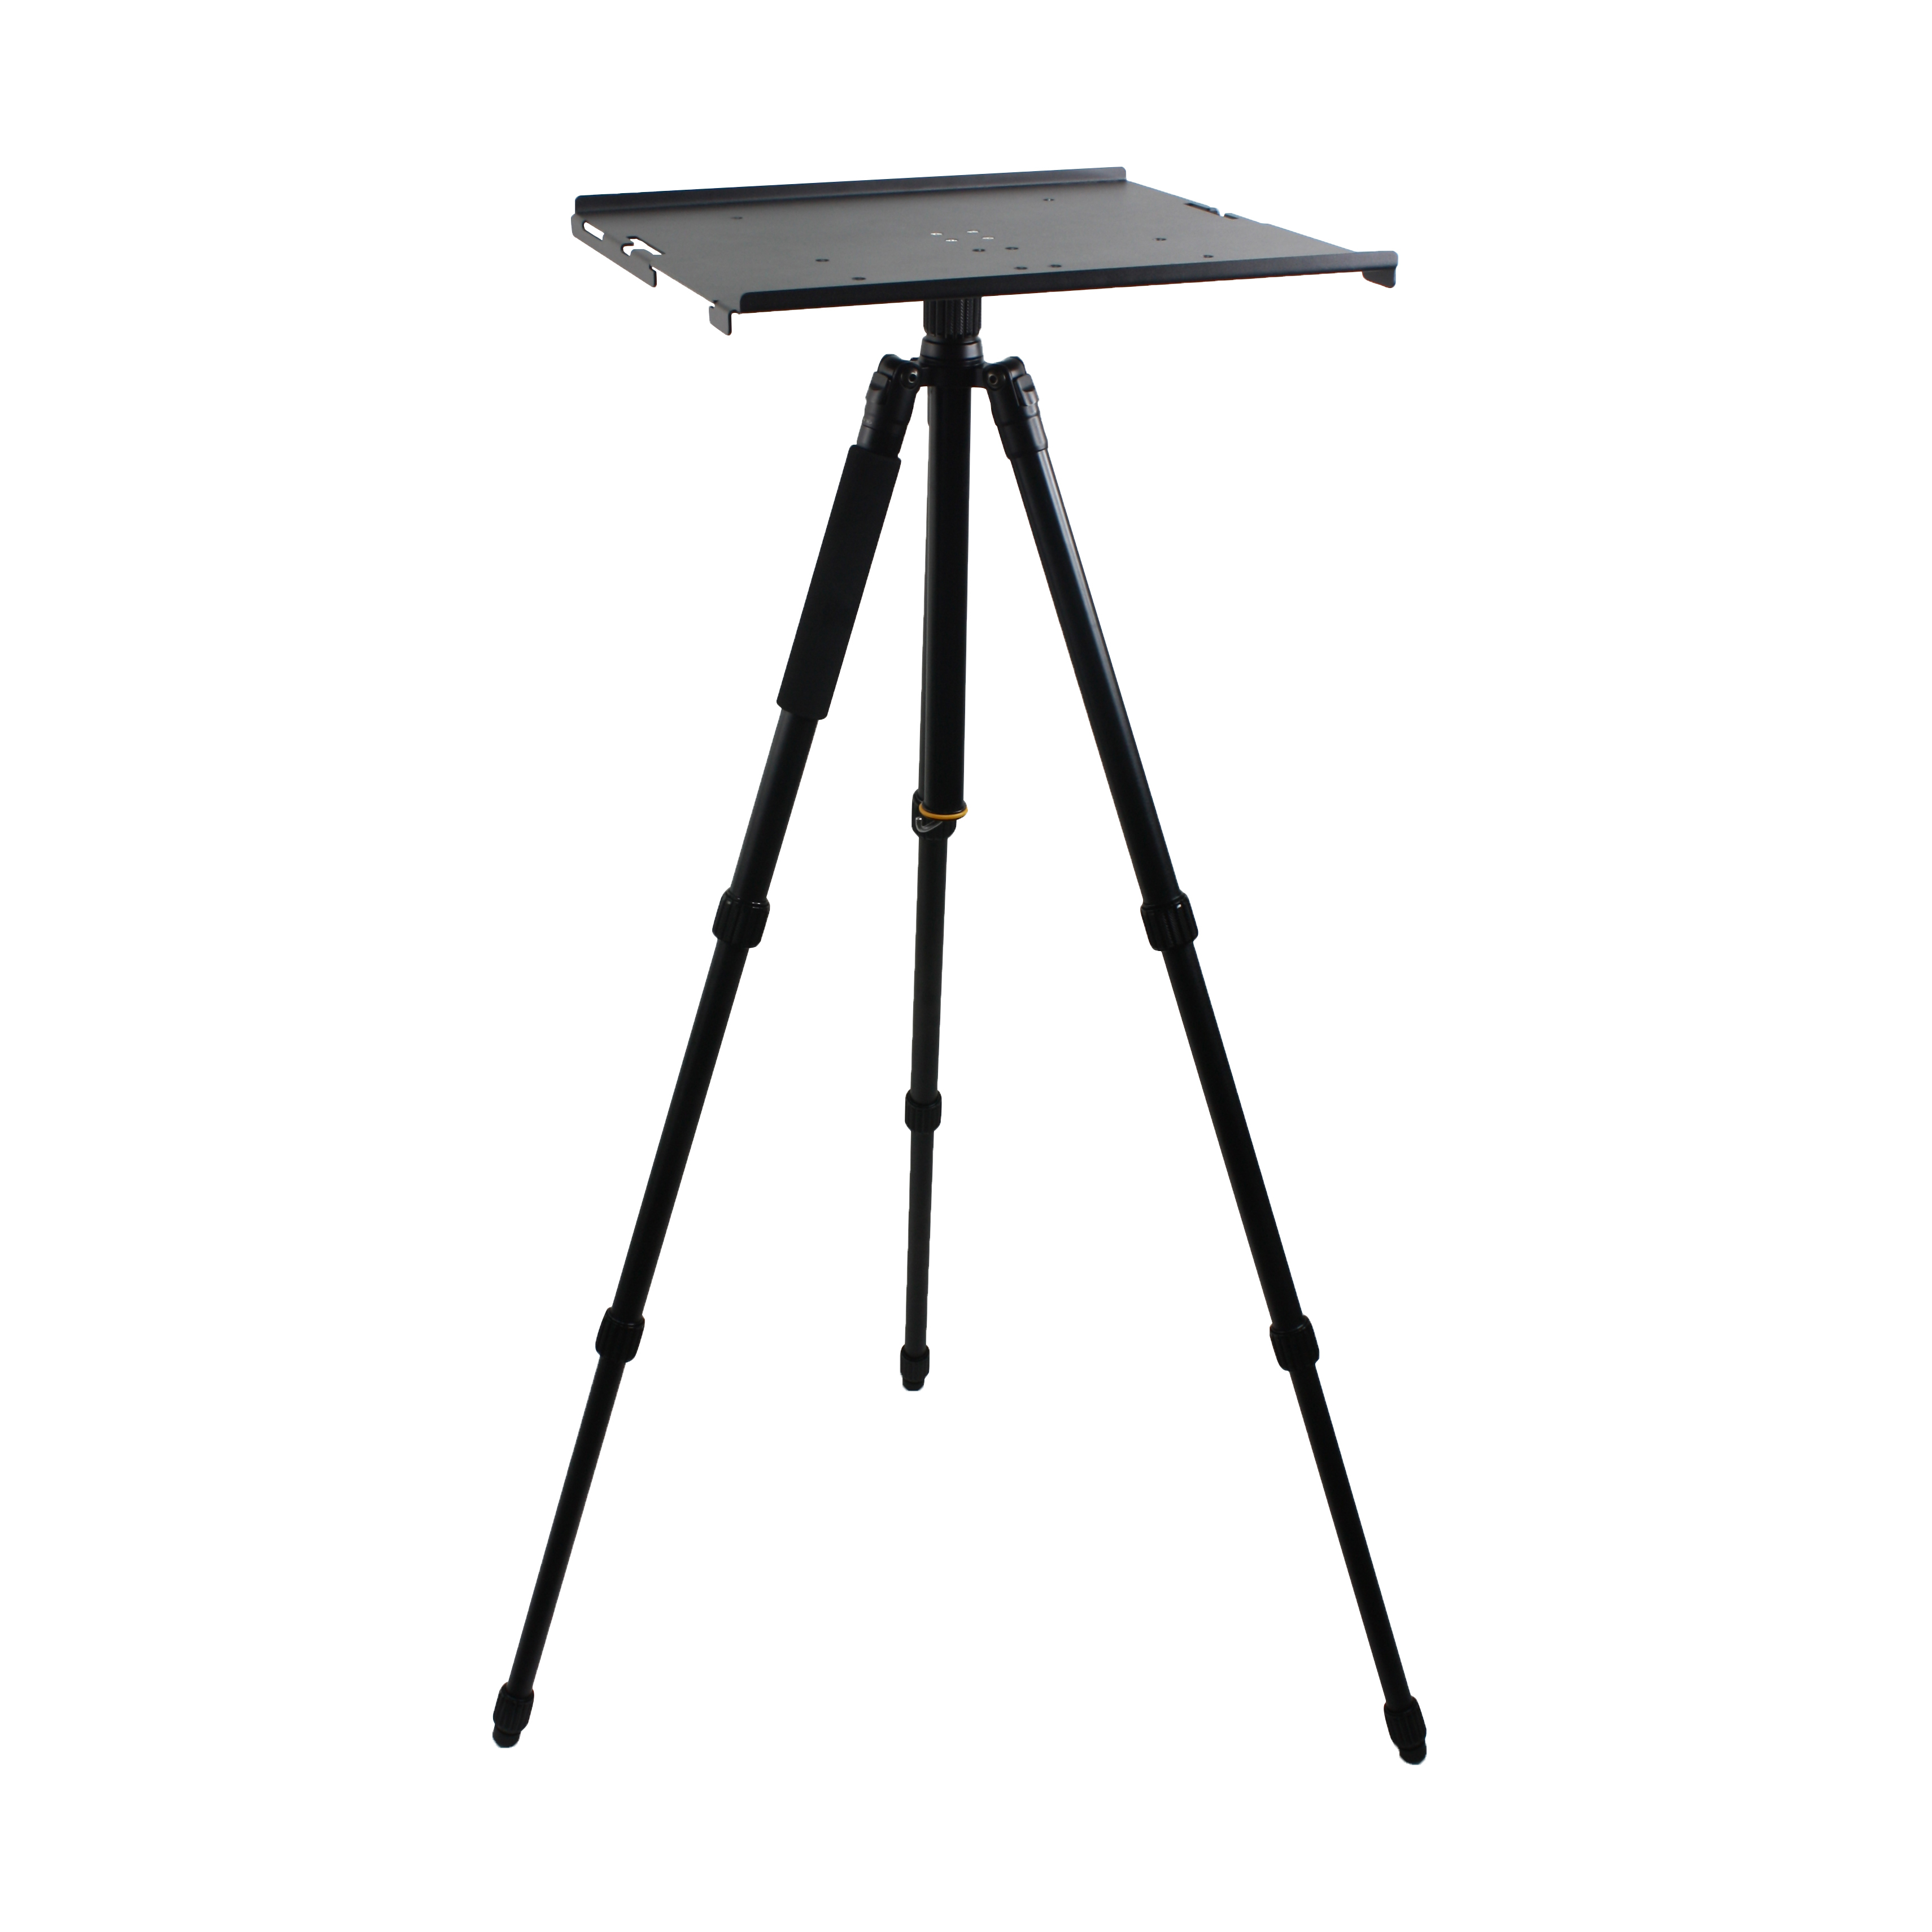 Table top + tripod set (without ball head) TS-TT01